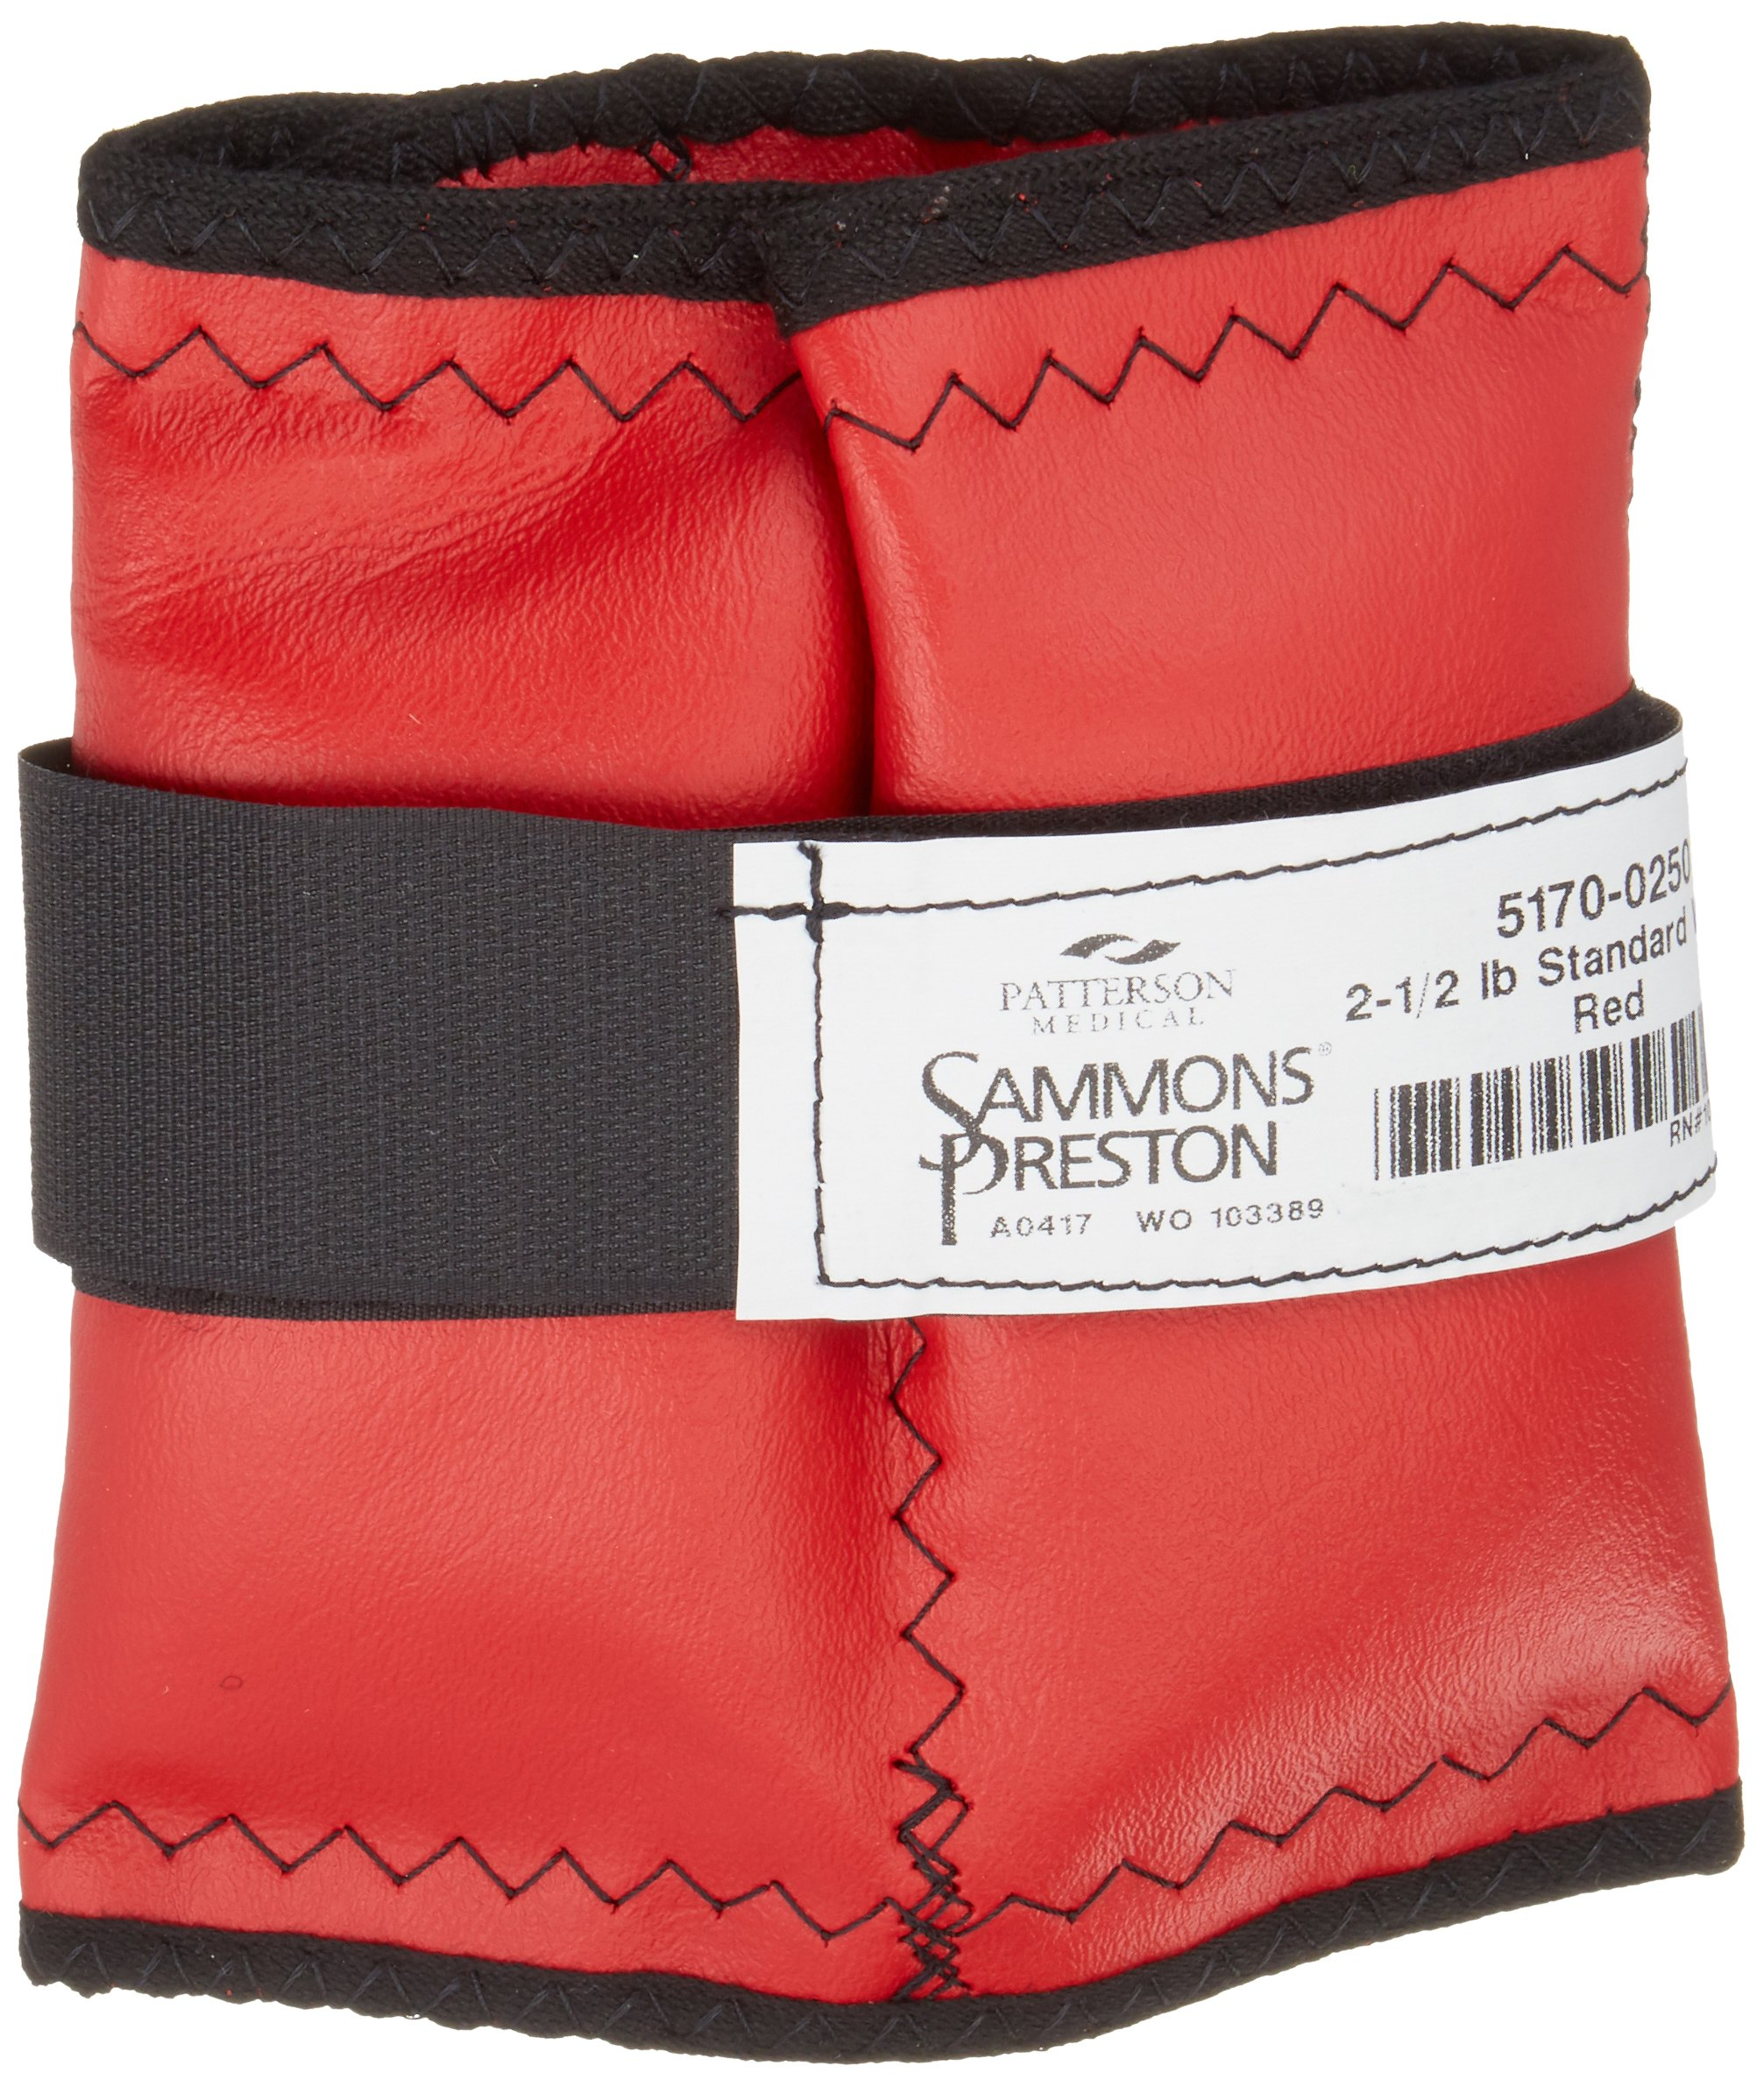 Sammons Preston Cuff Weight, 2.5 lb, Red, Velcro Strap & D-Ring Closure, Grommet for Easy Hanging, Steel Ankle & Wrist Weights are Lead Free, Exercise Tool for Strength Building & Injury Rehab